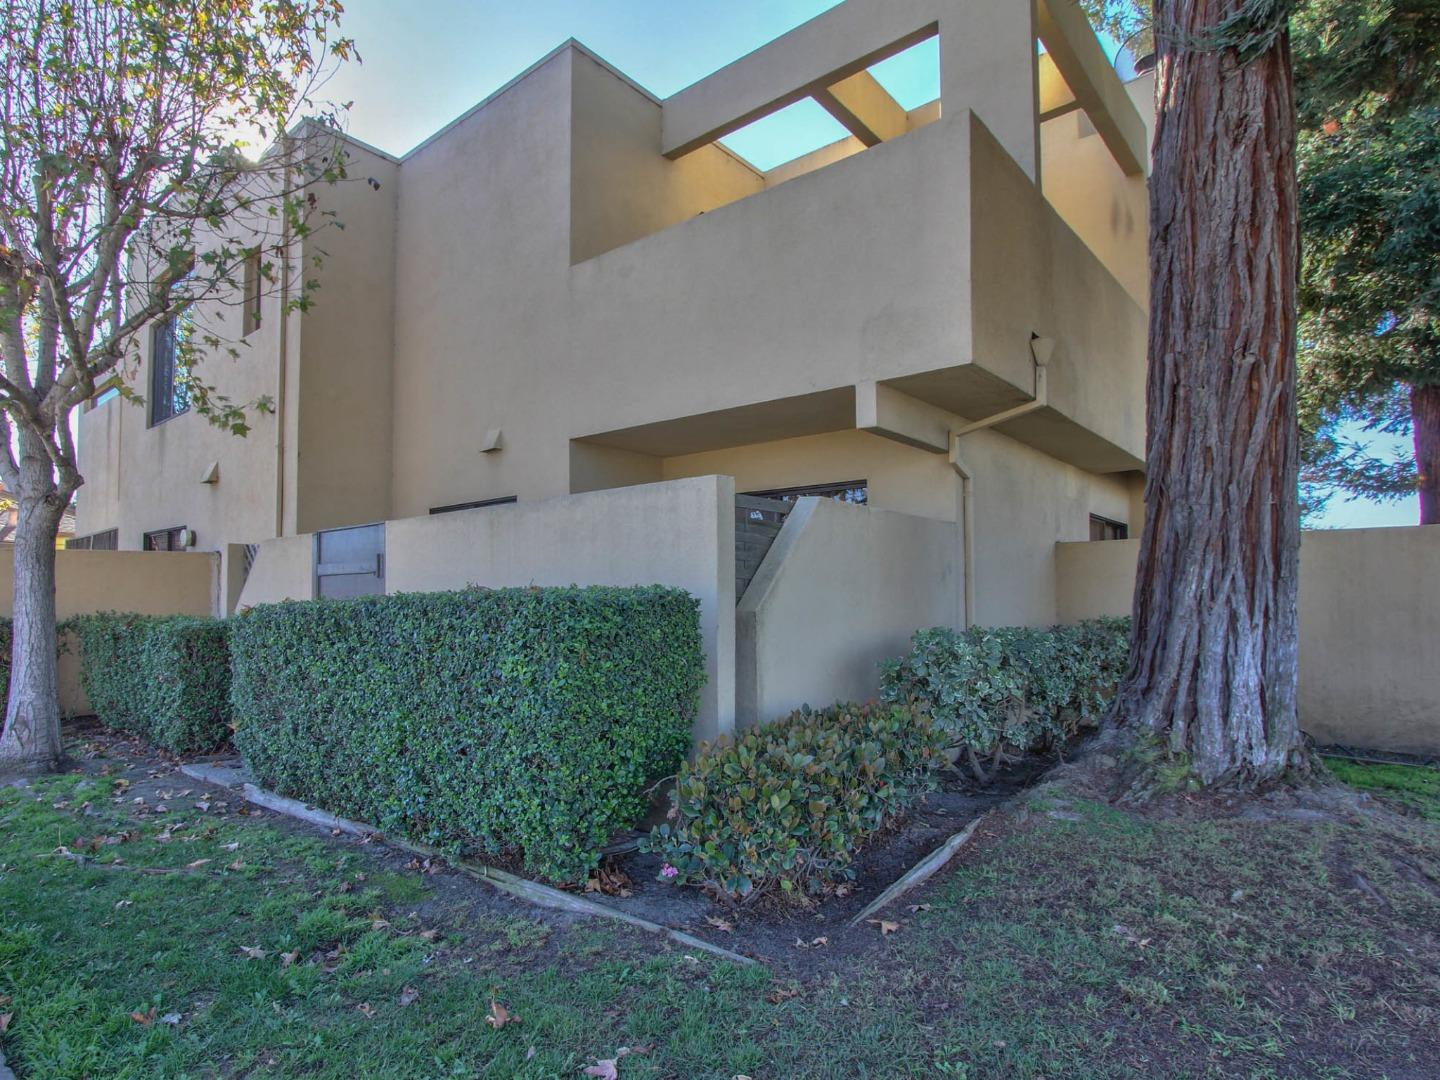 Condominium for Sale at 1051 Padre Drive 1051 Padre Drive Salinas, California 93901 United States